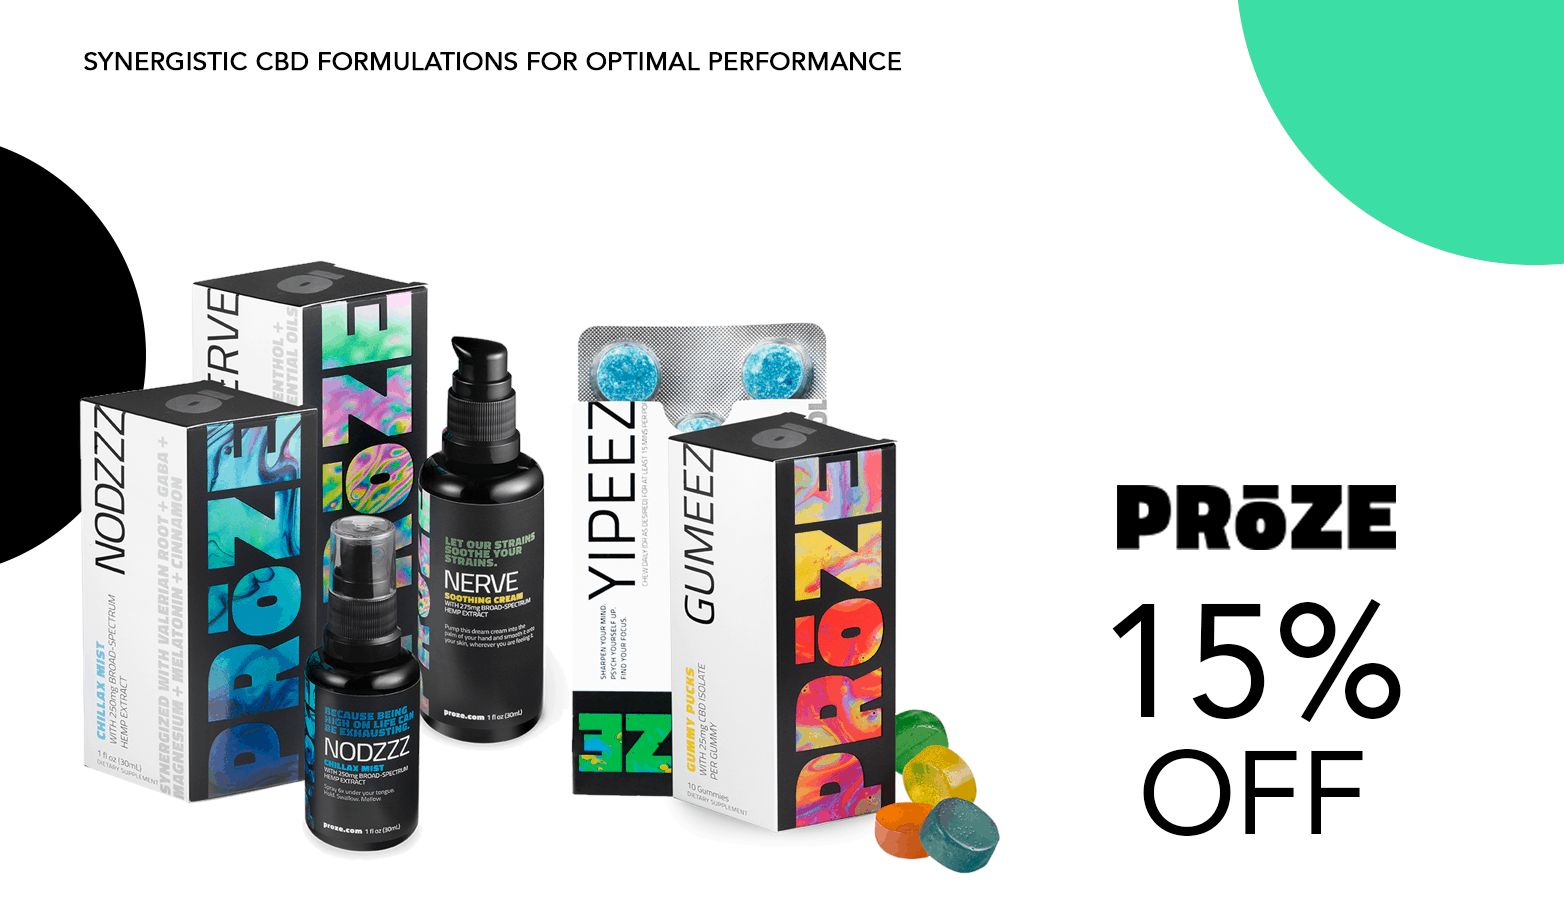 Proze CBD Coupon Code Offer Website